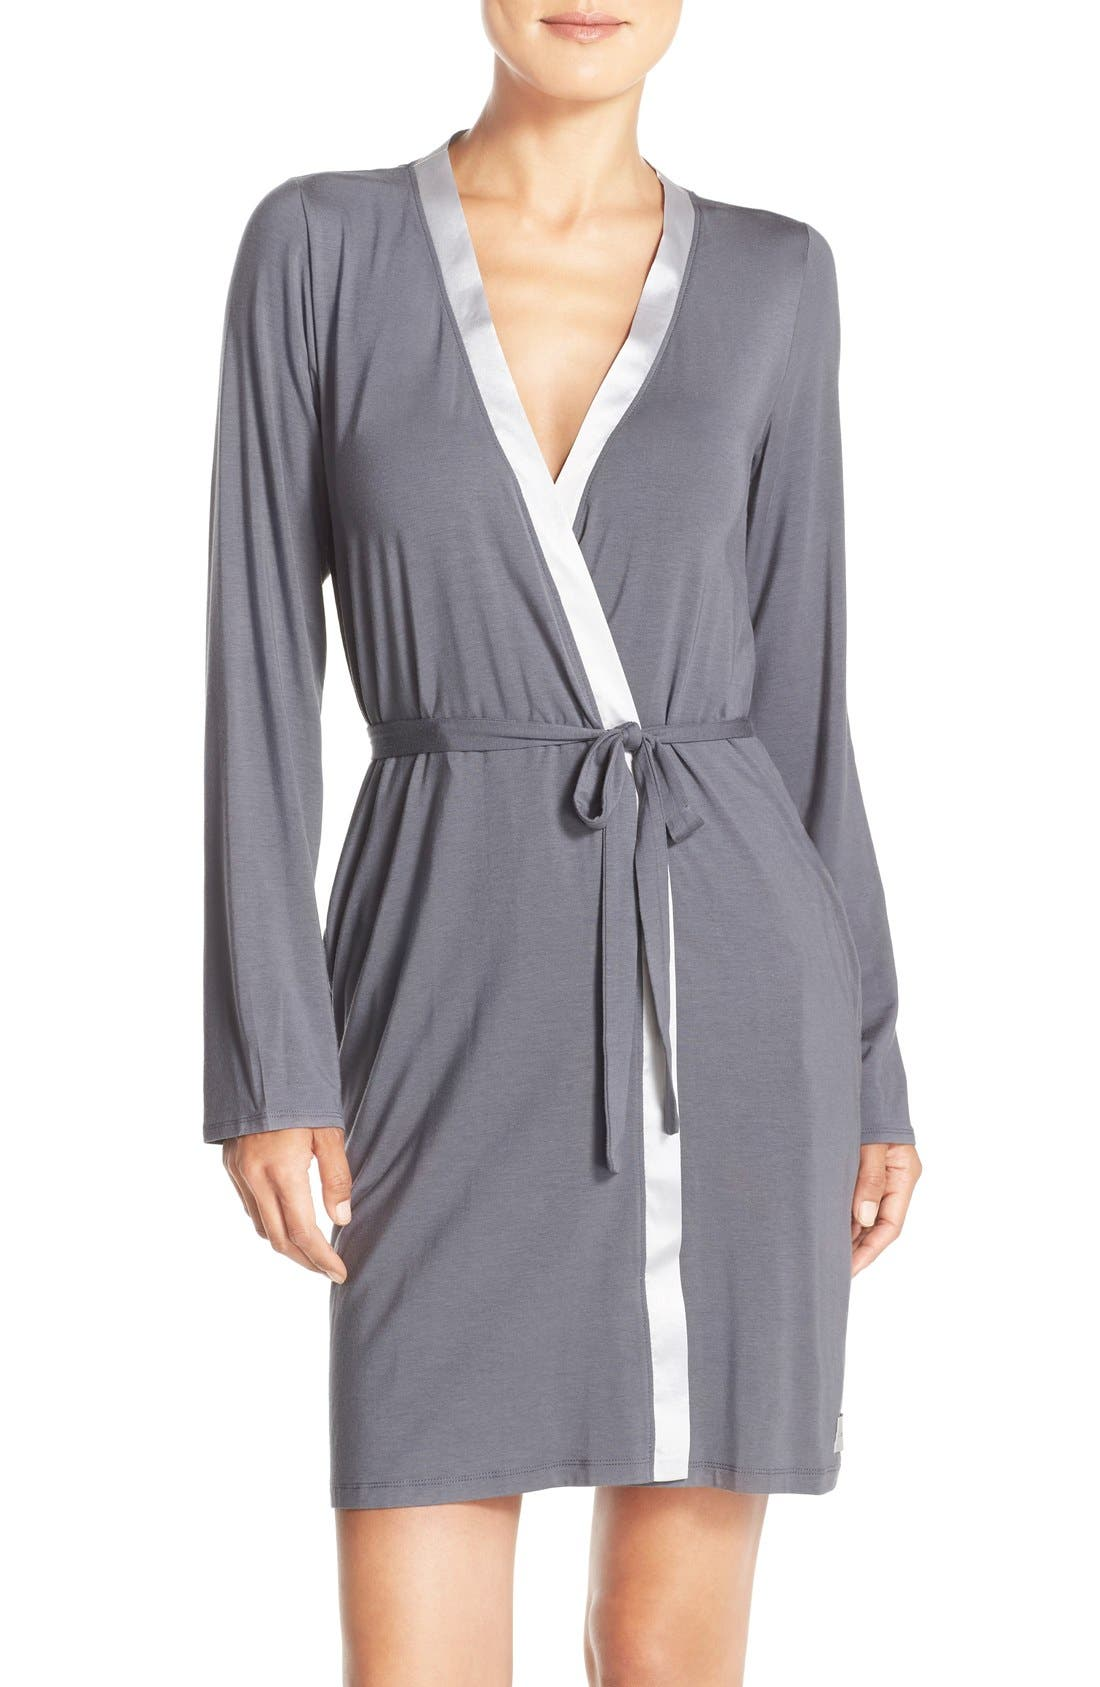 Main Image - Calvin Klein 'Essentials' Short Robe